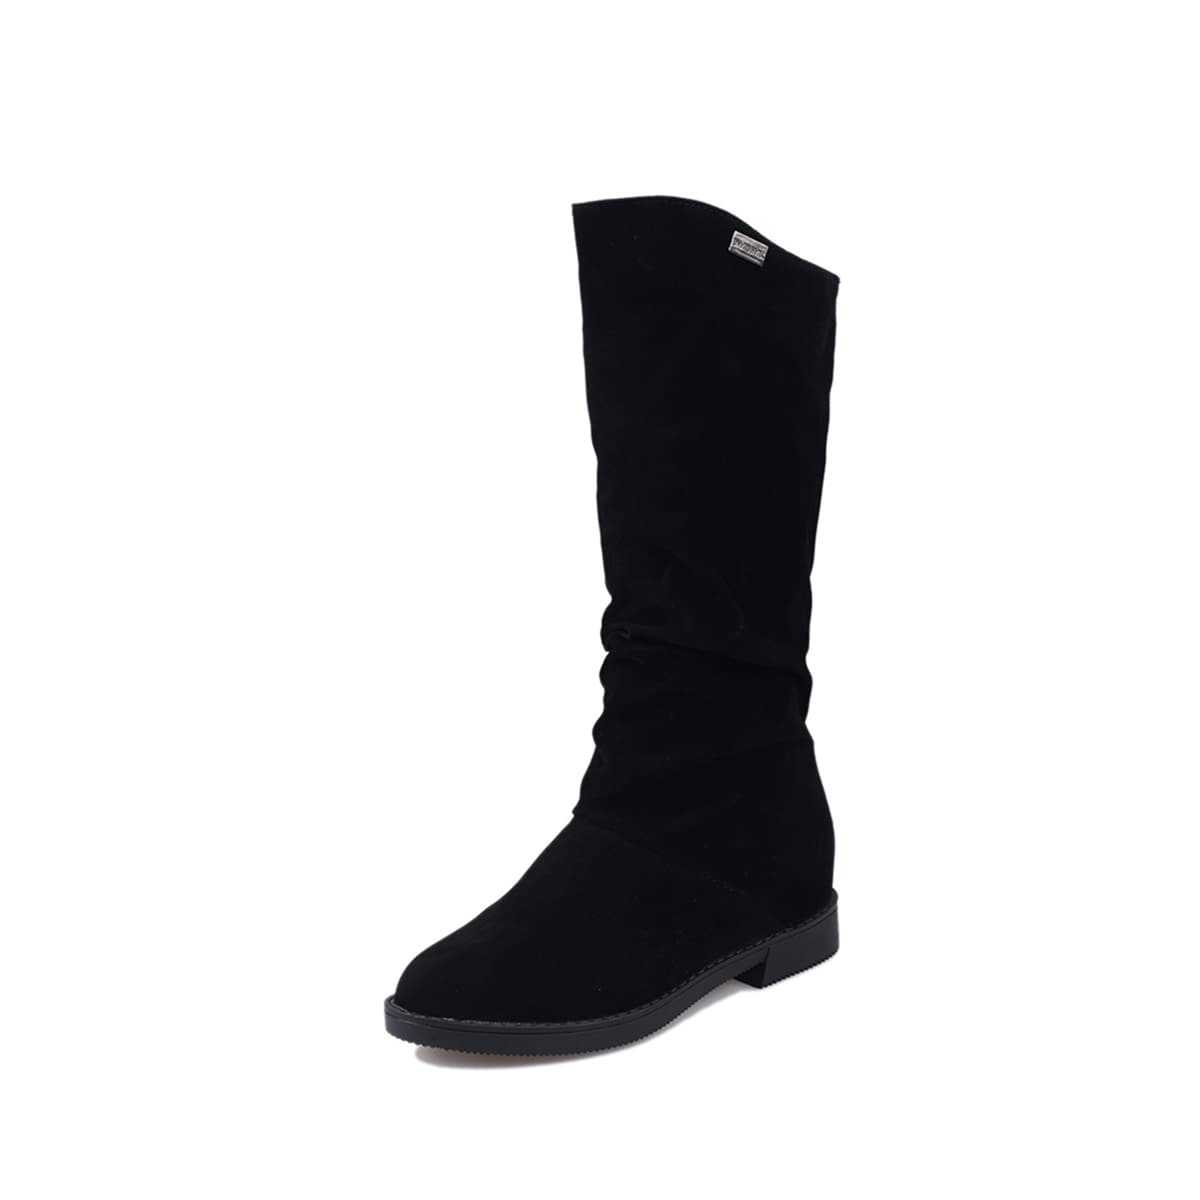 Mid Calf Suede Boots in Black by ROMWE on GOOFASH